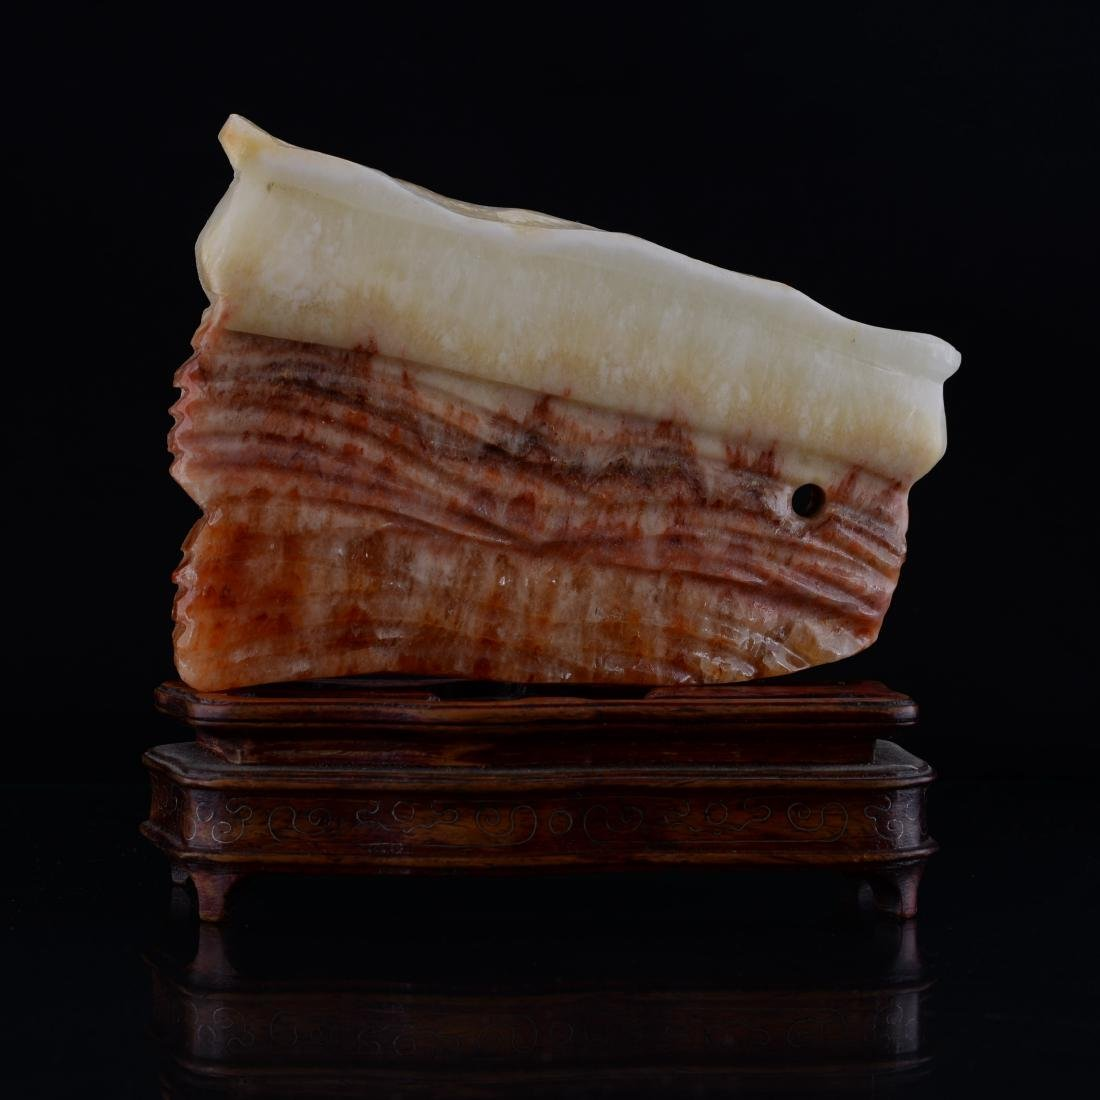 Chinese Meat-shaped Stone